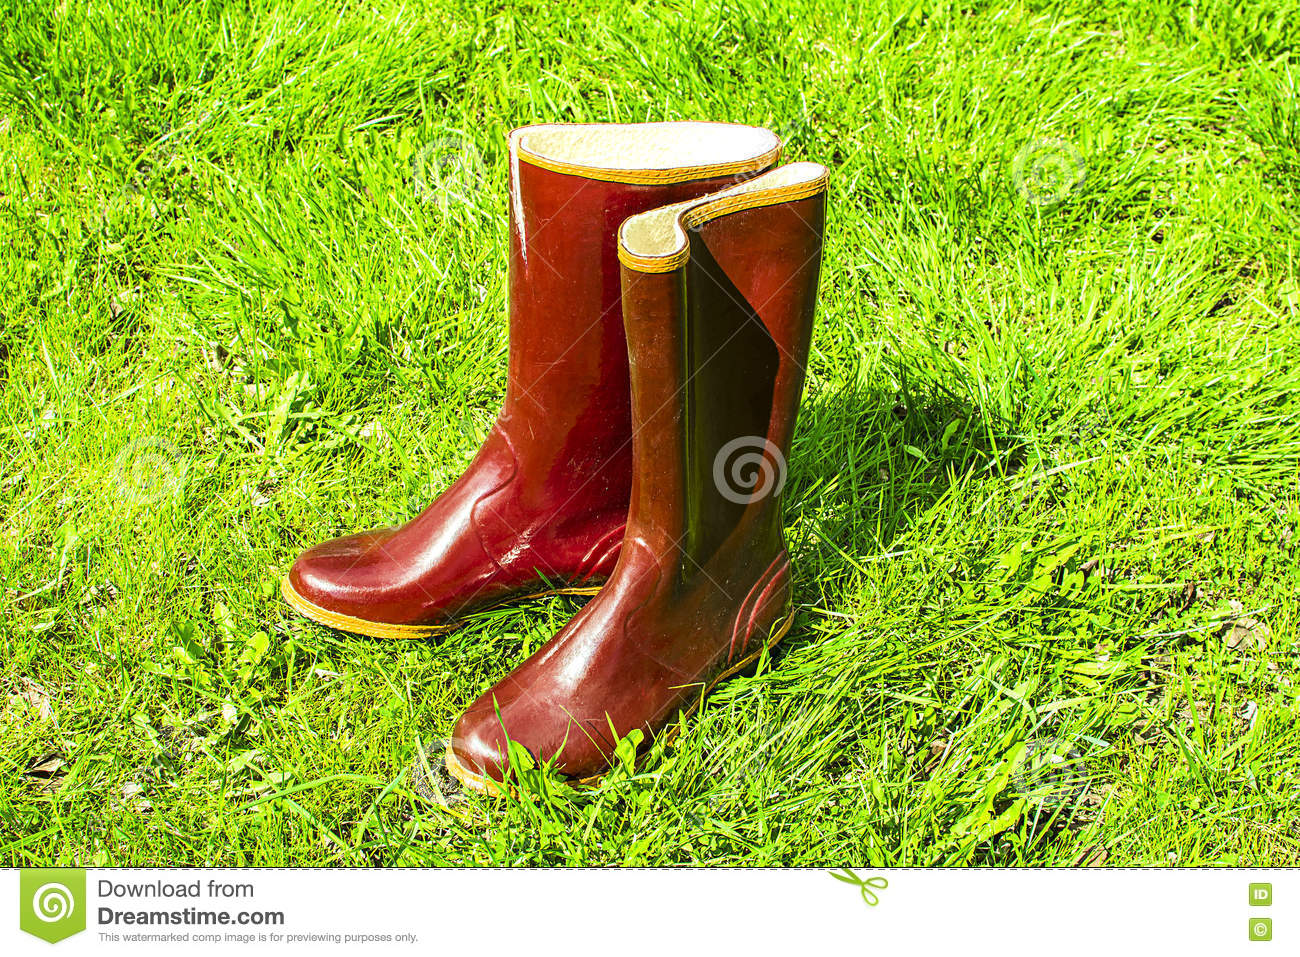 Old Rubber Boots Standing On The Grass Stock Image - Image ...